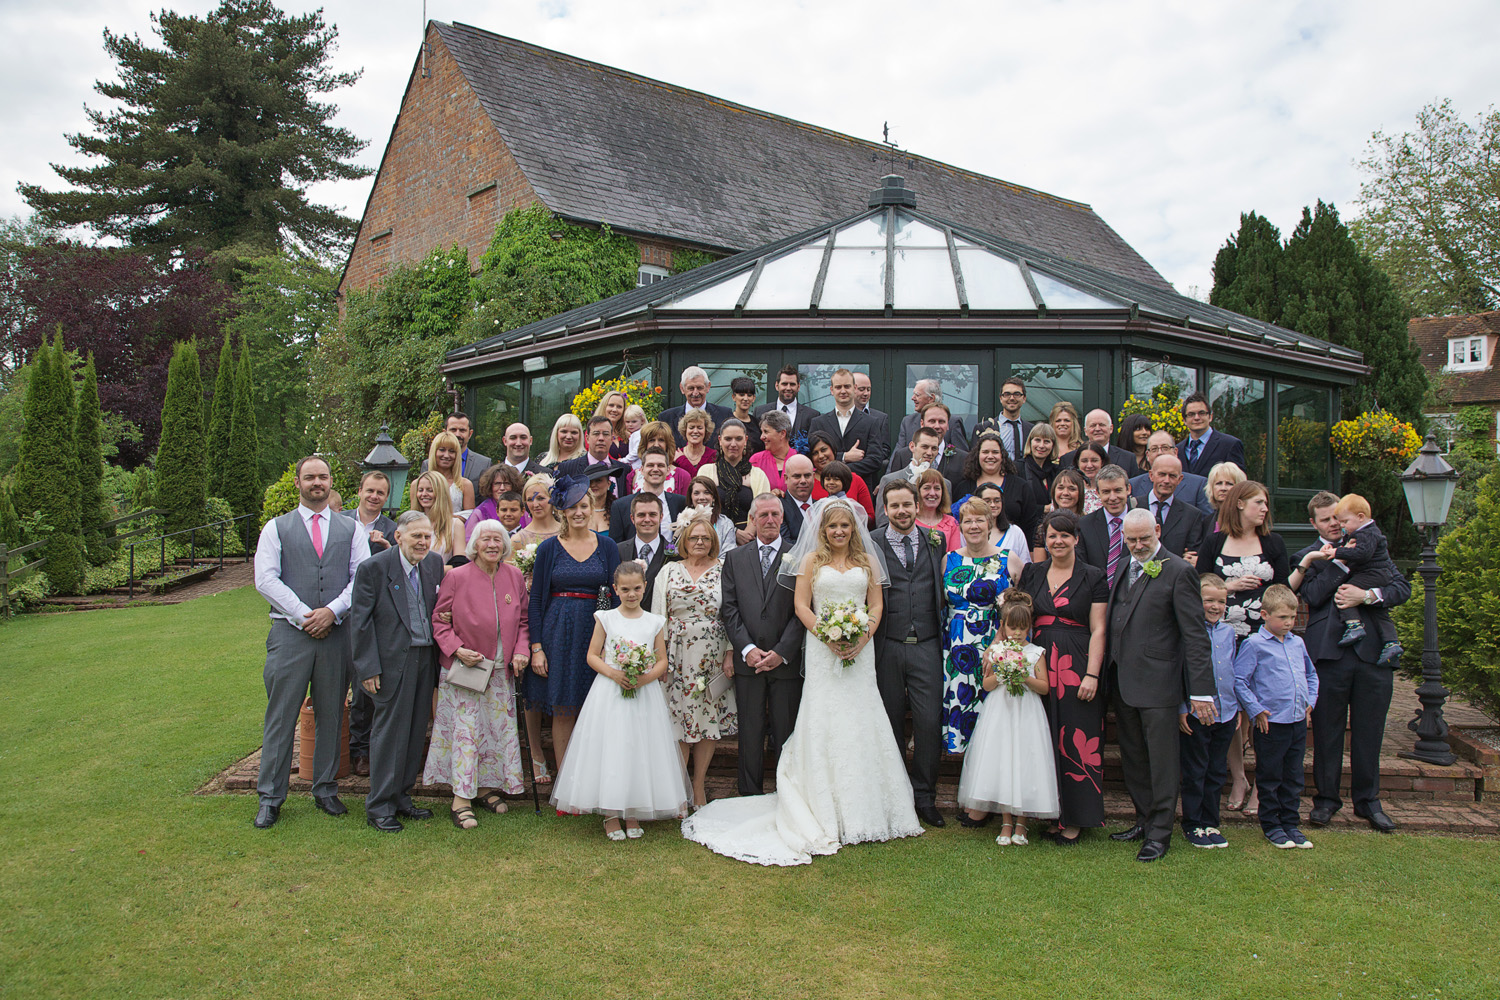 The_Old_Mill_Wedding_Photographer_Aldermaston_007.jpg